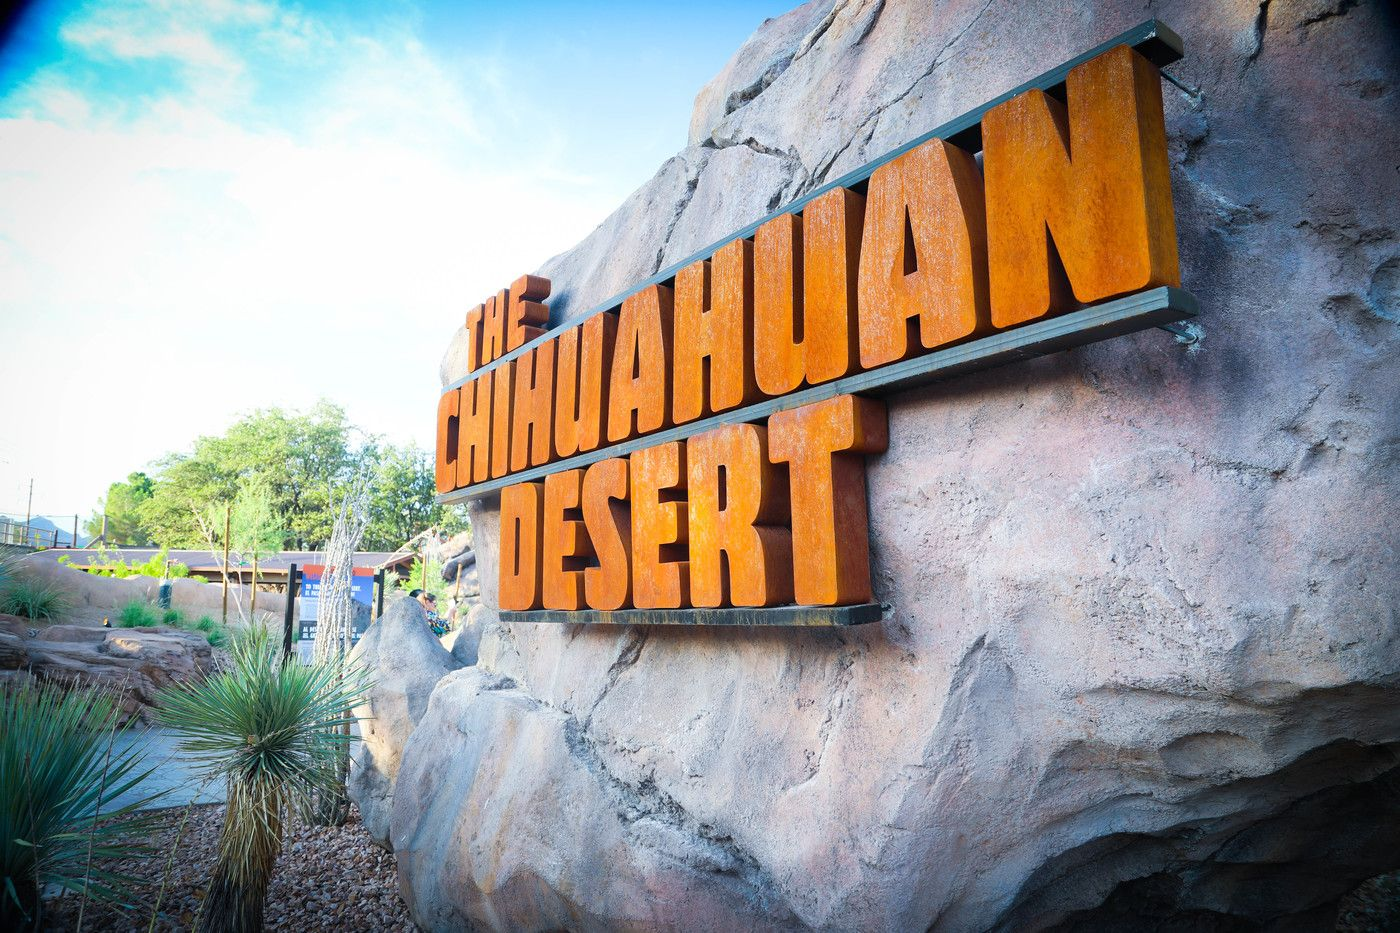 New Chihuahuan Desert exhibit at the El Paso Zoo